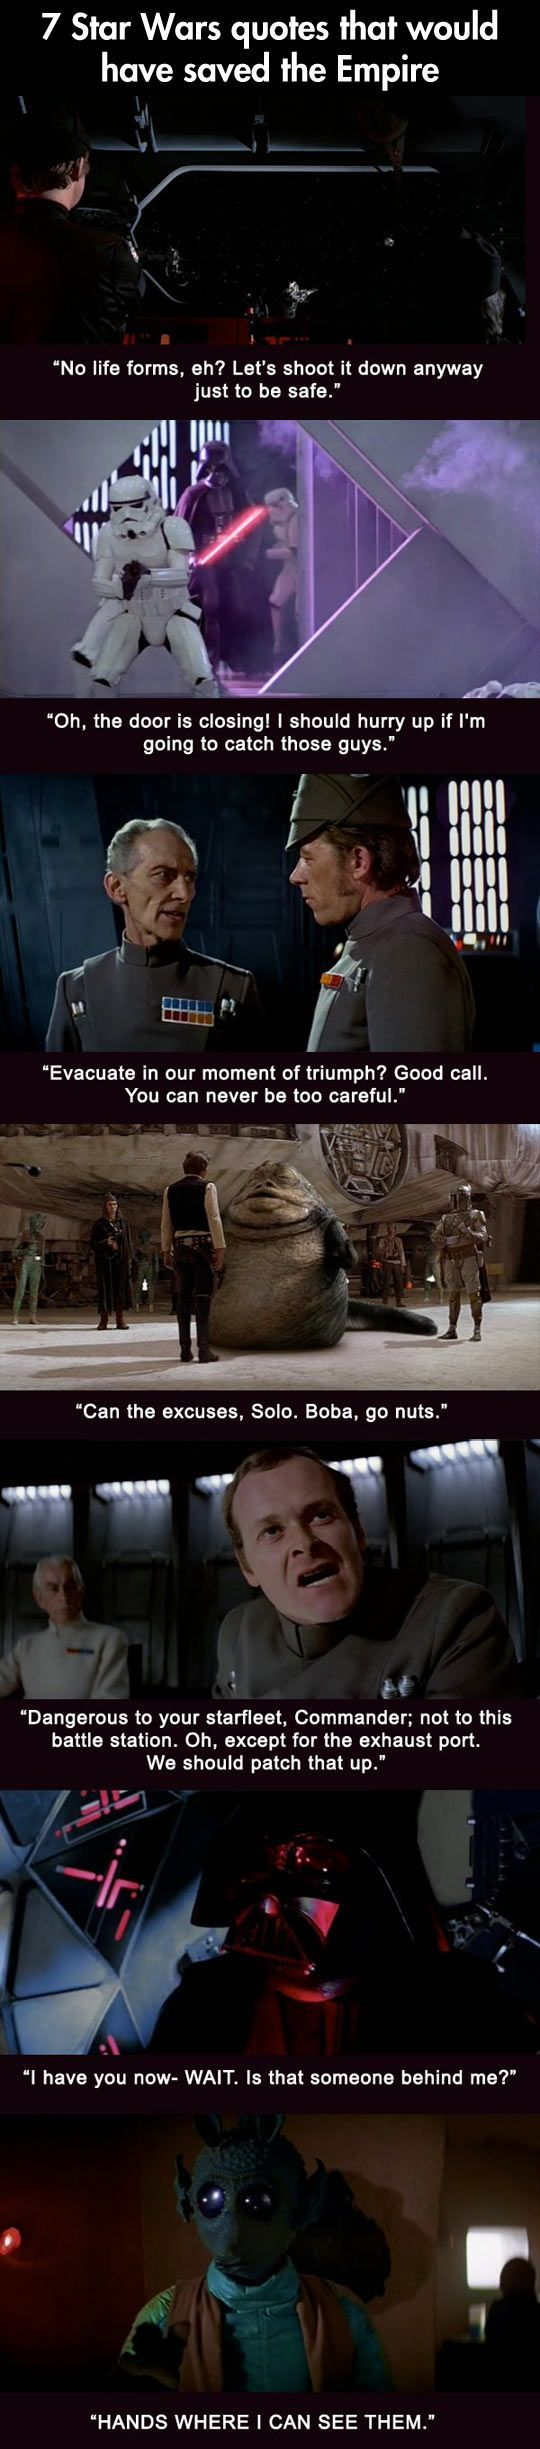 Star Wars... Kinda want to see these happen lol